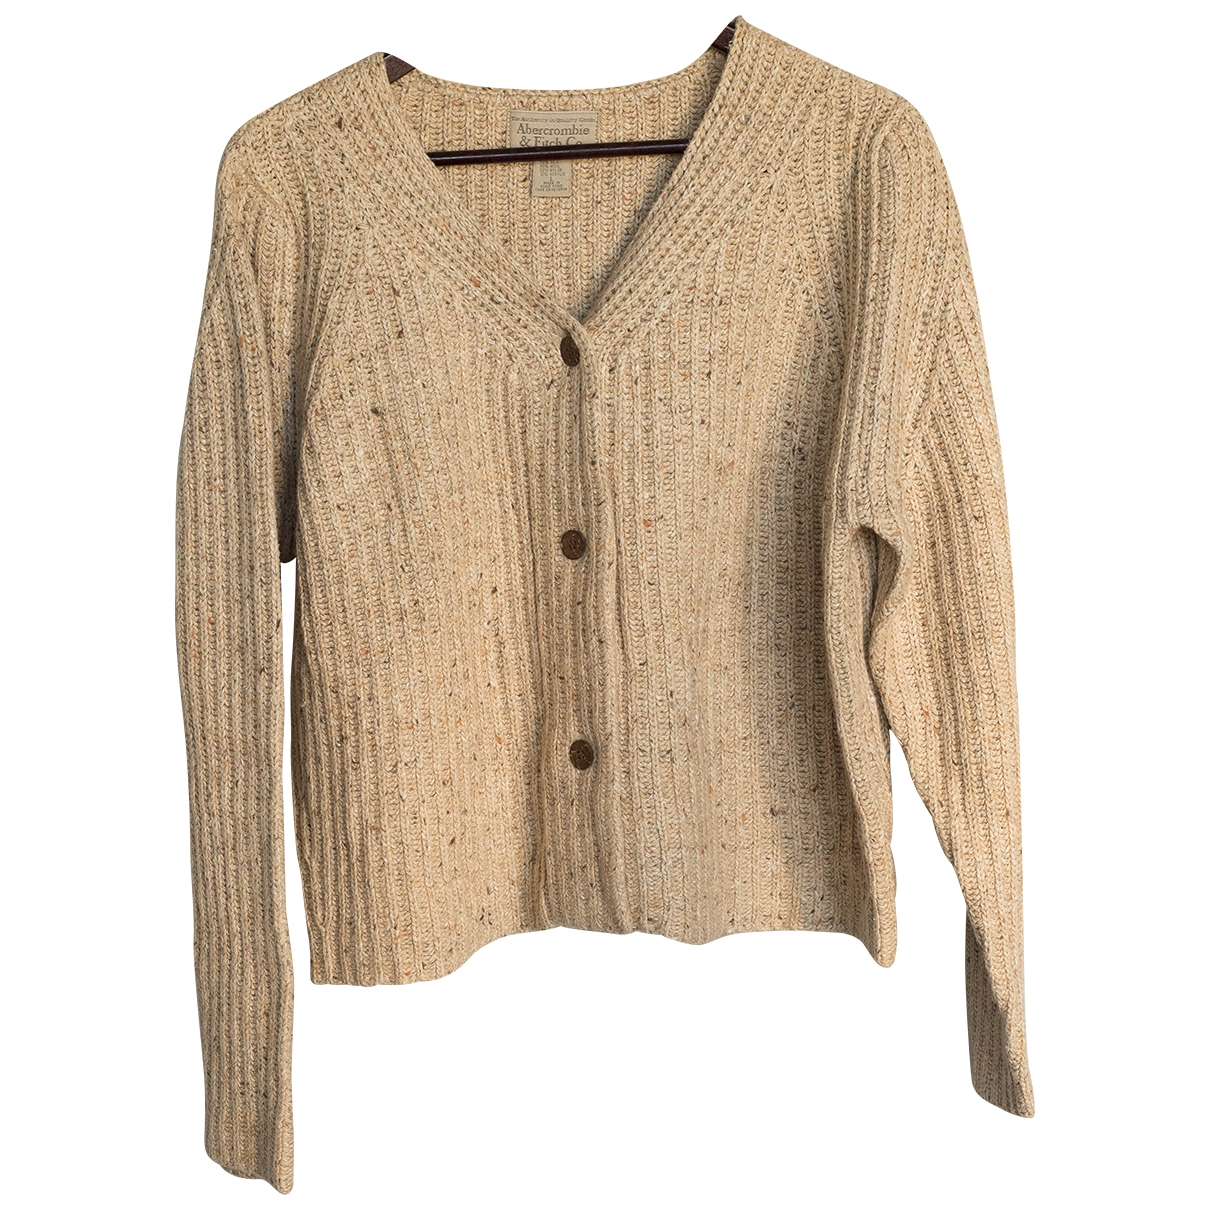 Abercrombie & Fitch \N Ecru Cotton Knitwear for Women L International